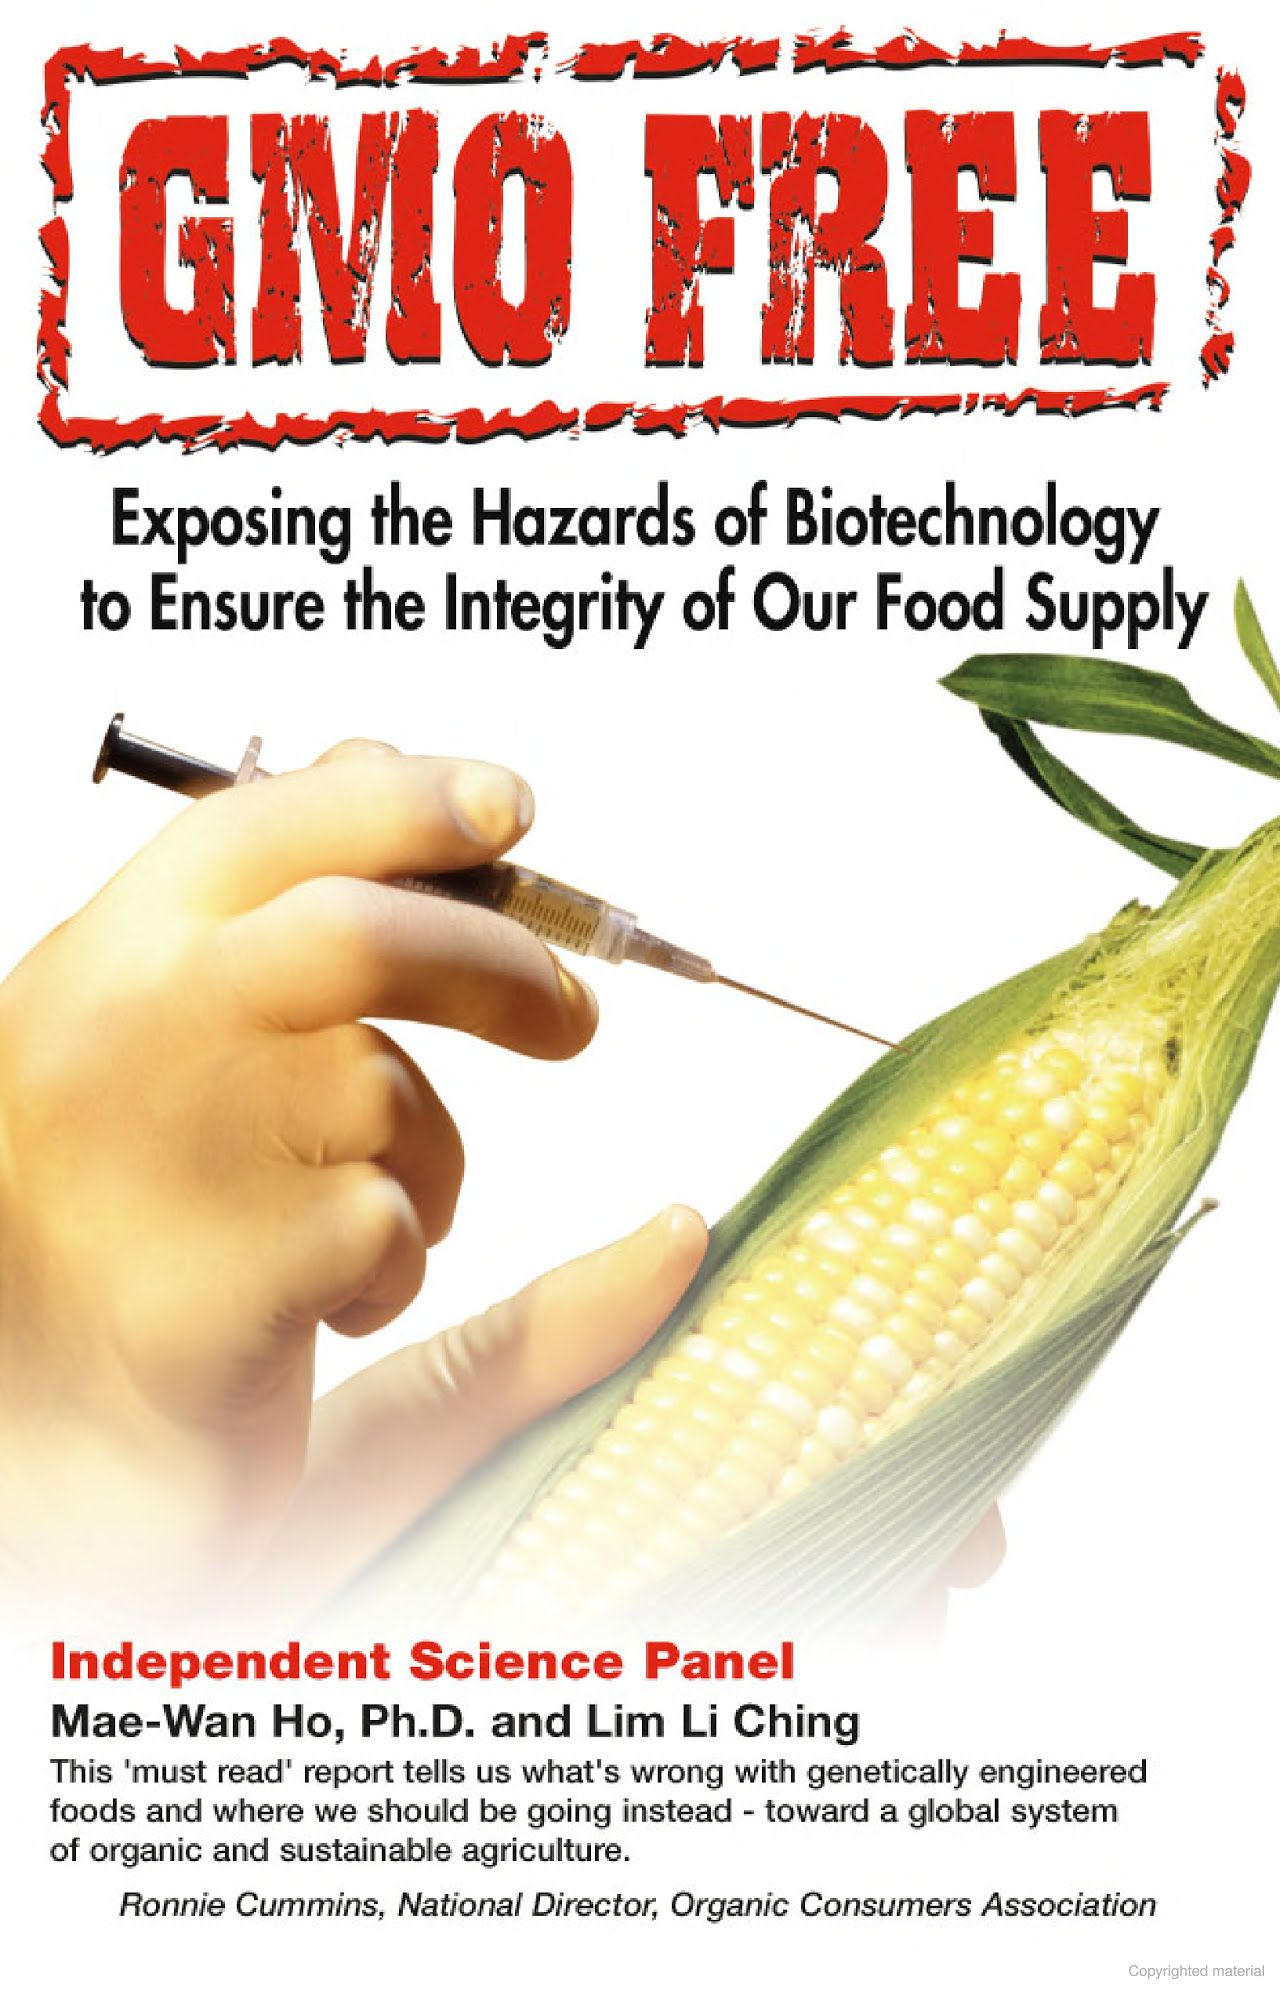 gmo free exposing the hazards of biotechnology to ensure the integrity of our food supply